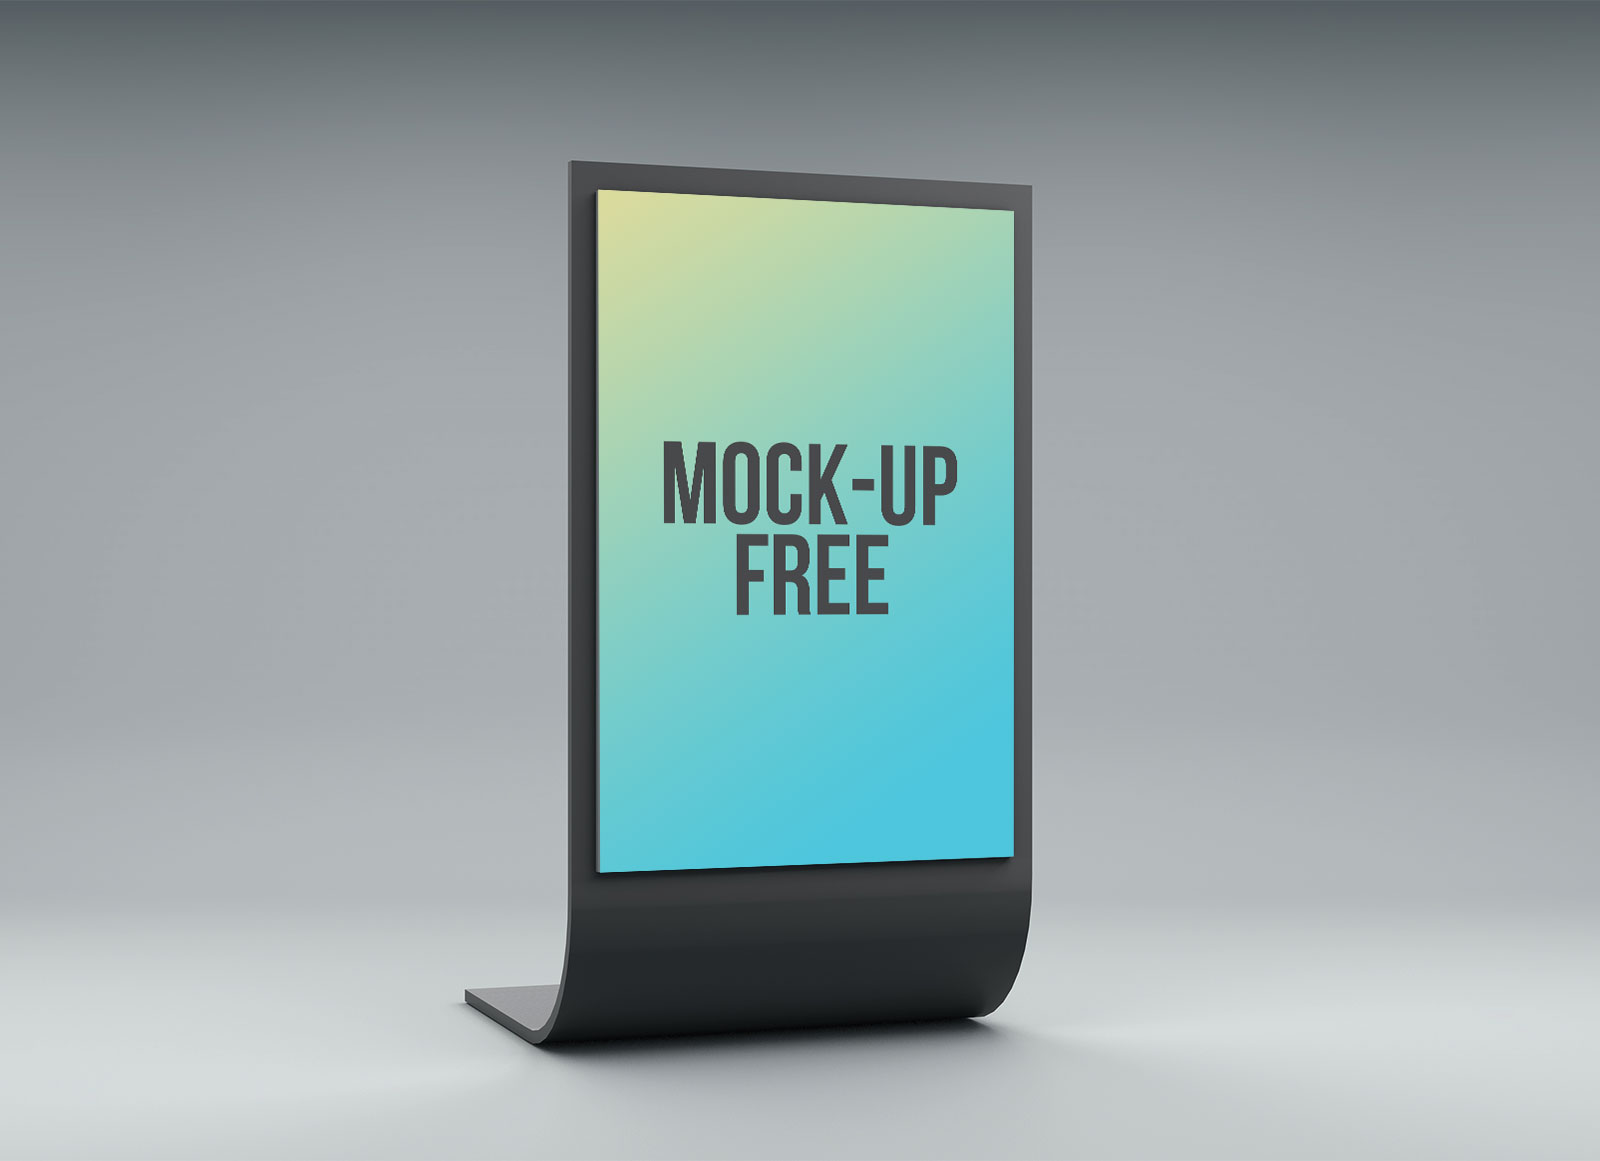 Exhibition Stand Mockup Free : Free curved d display stand mockup psd files good mockups